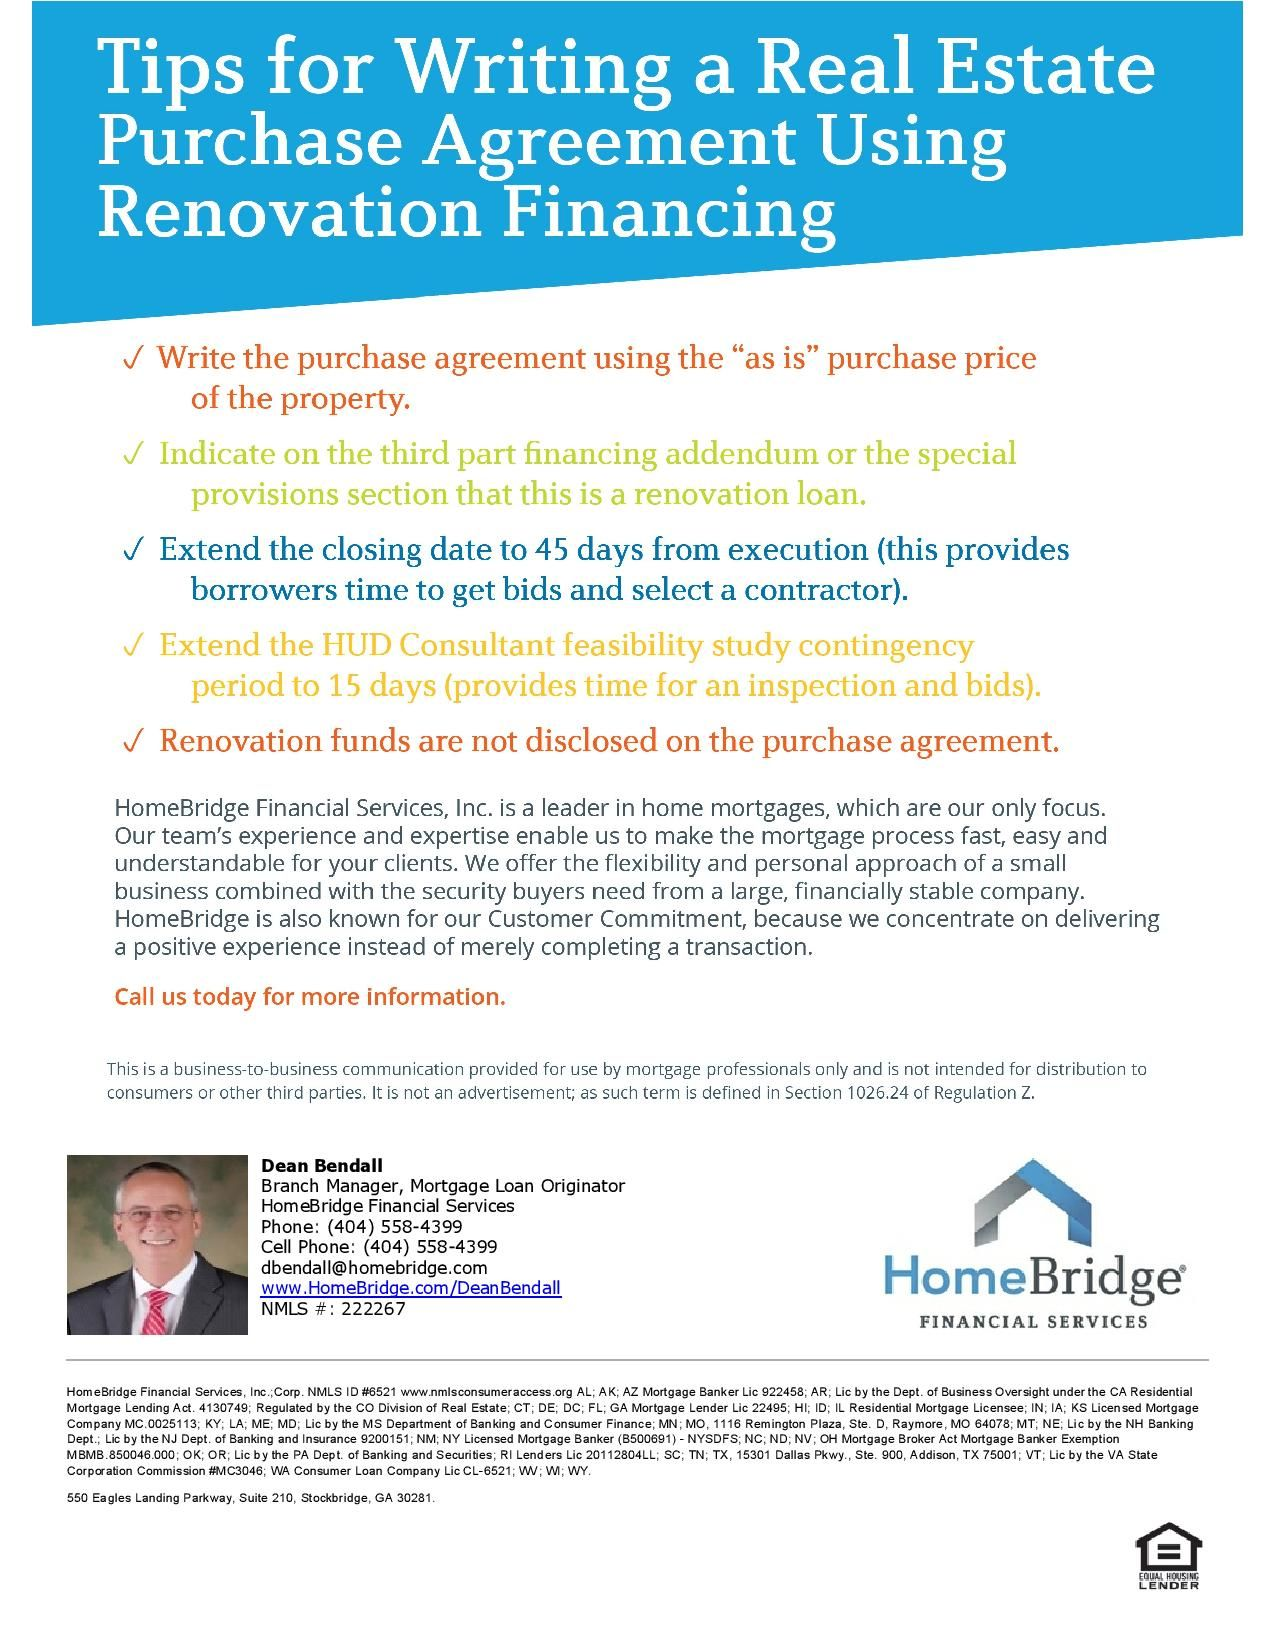 How To Write A Purchase Agreement For Renovation Financing